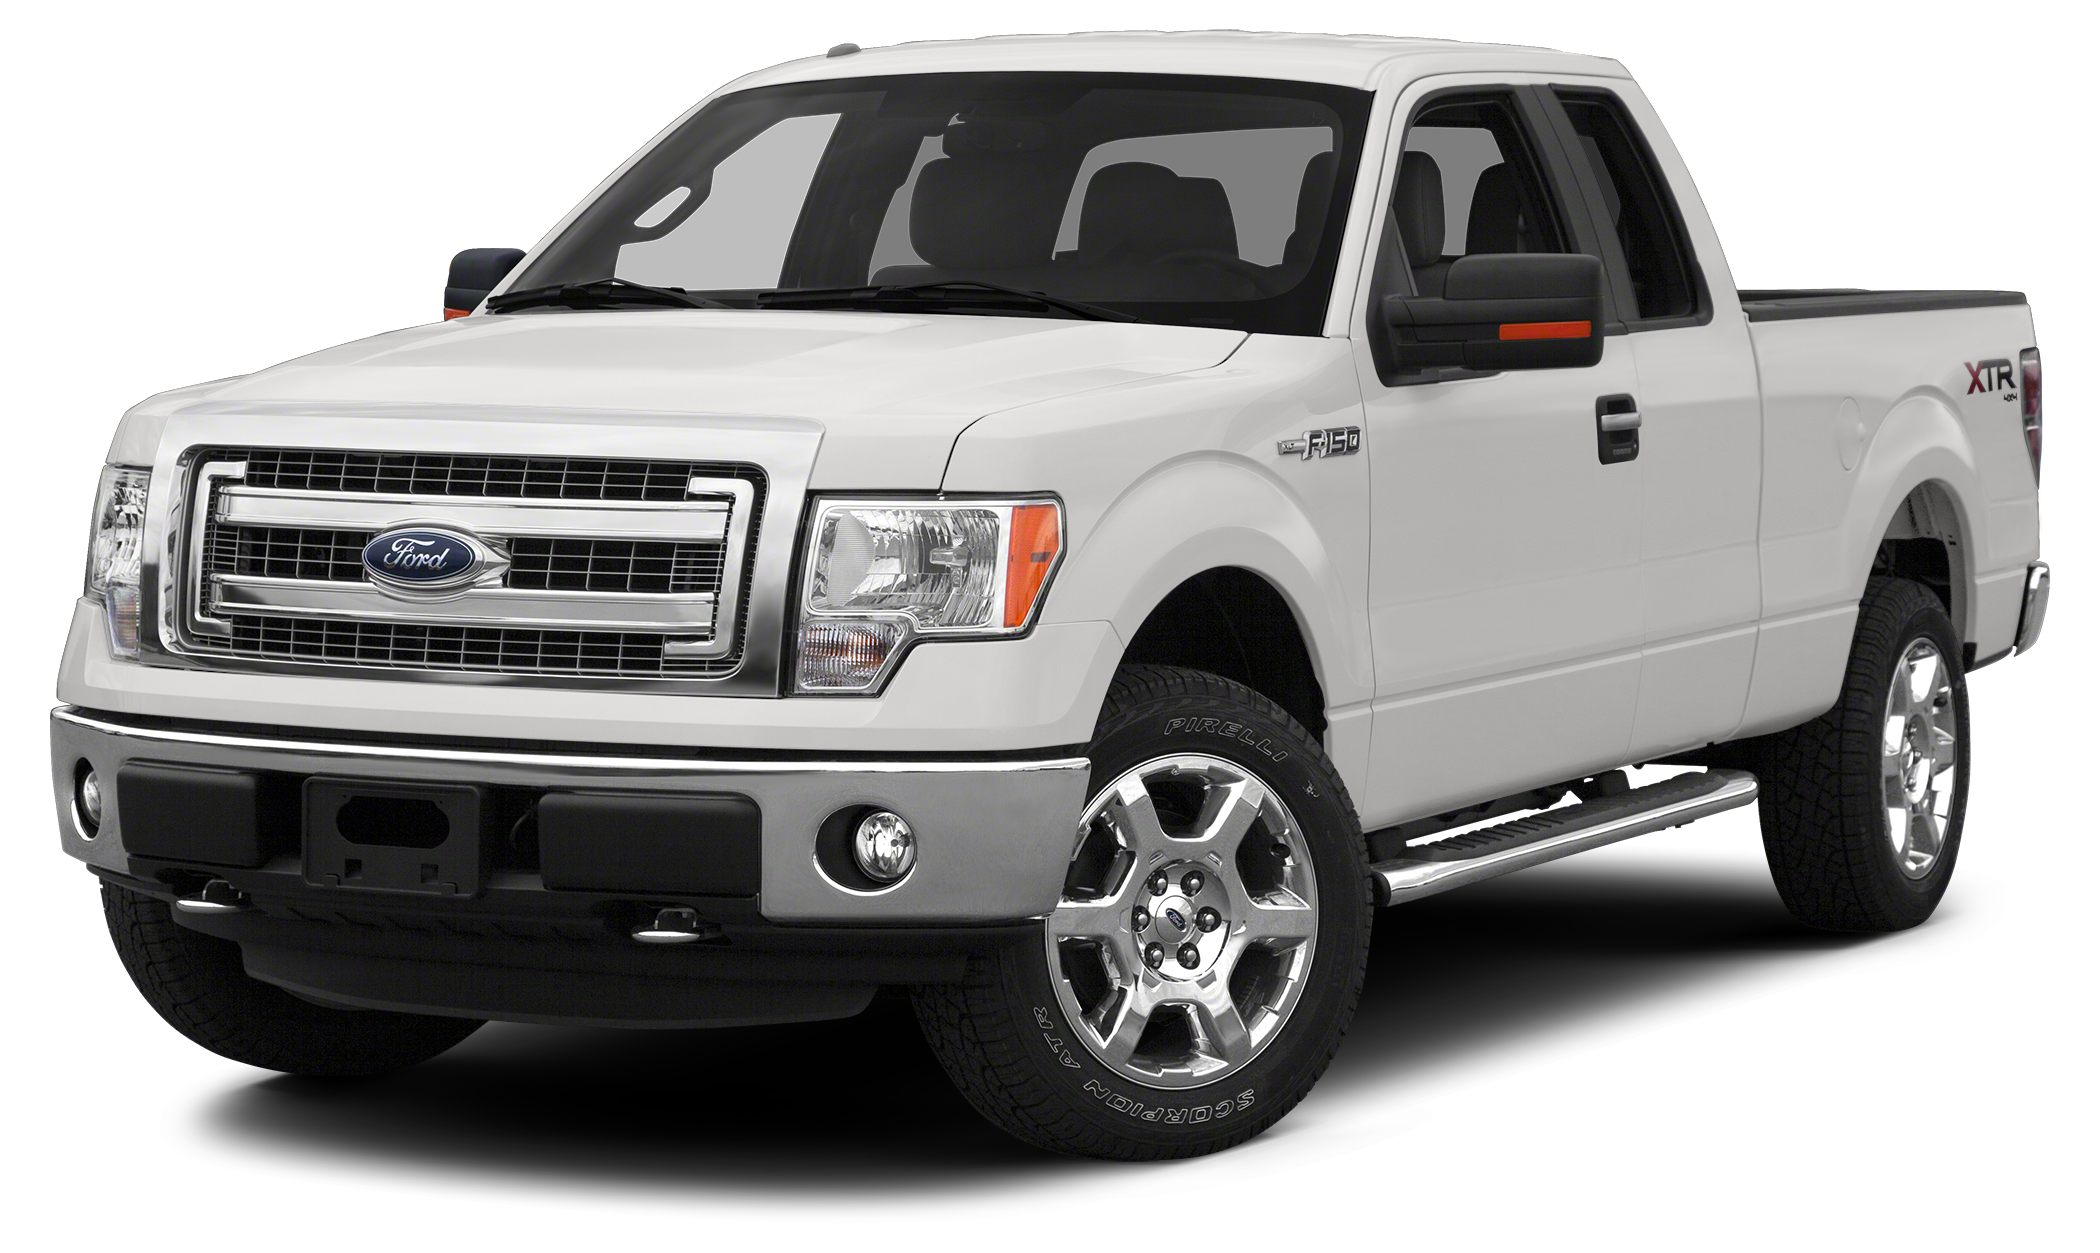 2013 Ford F-150 XL SUPERCAB POWER EQUIPMENT SYNC PLUS PACKAGE ONLY 30K MILES LOCAL VEHICLE